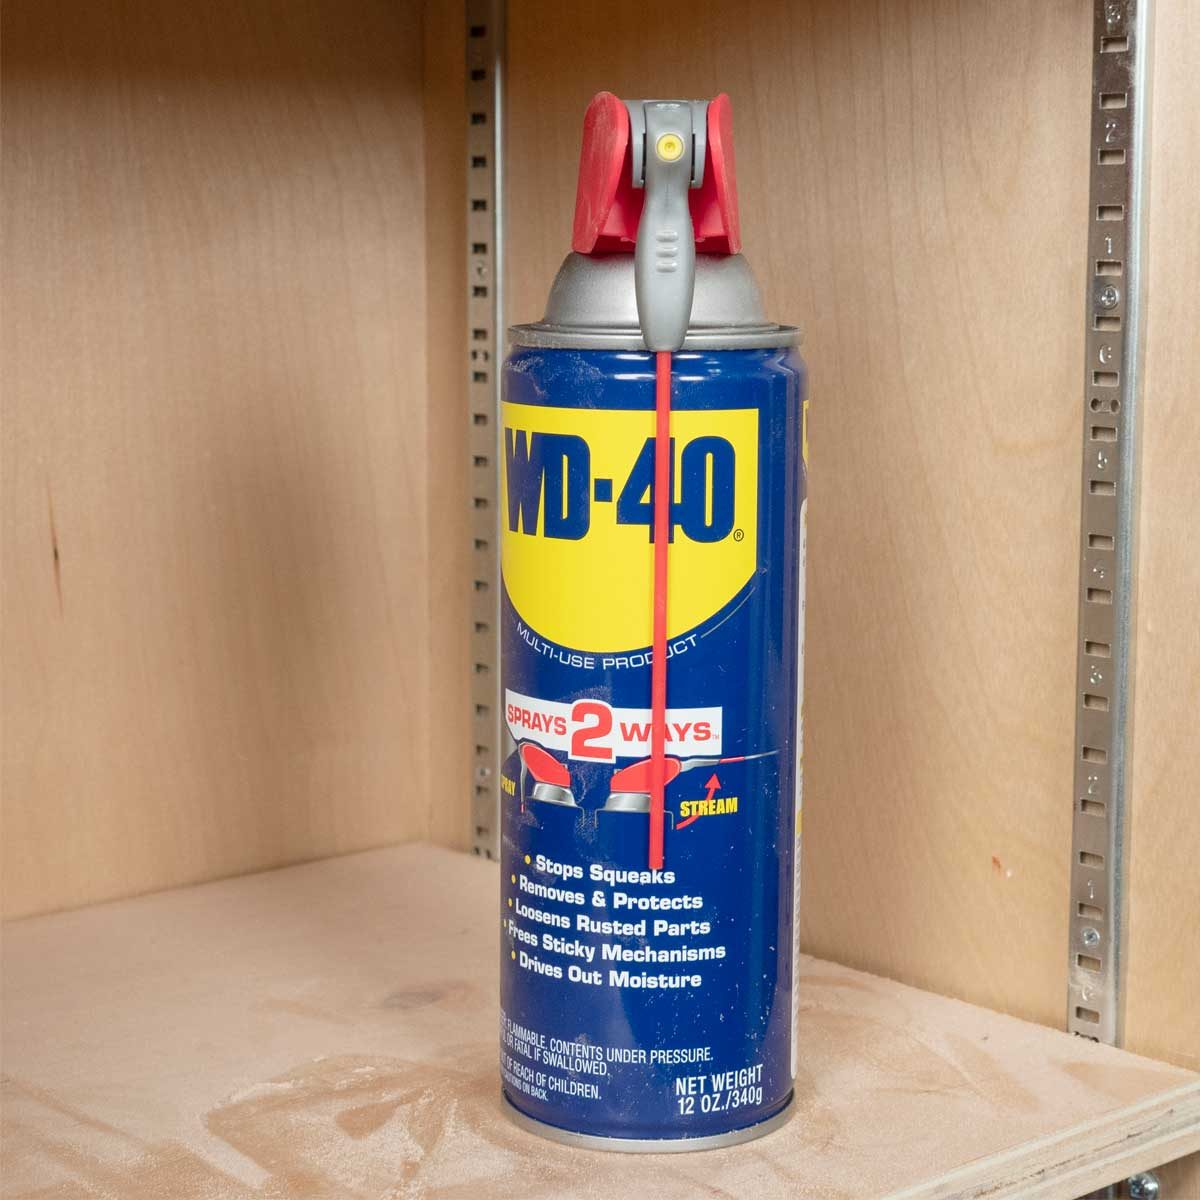 WD-40 Featured Image at home